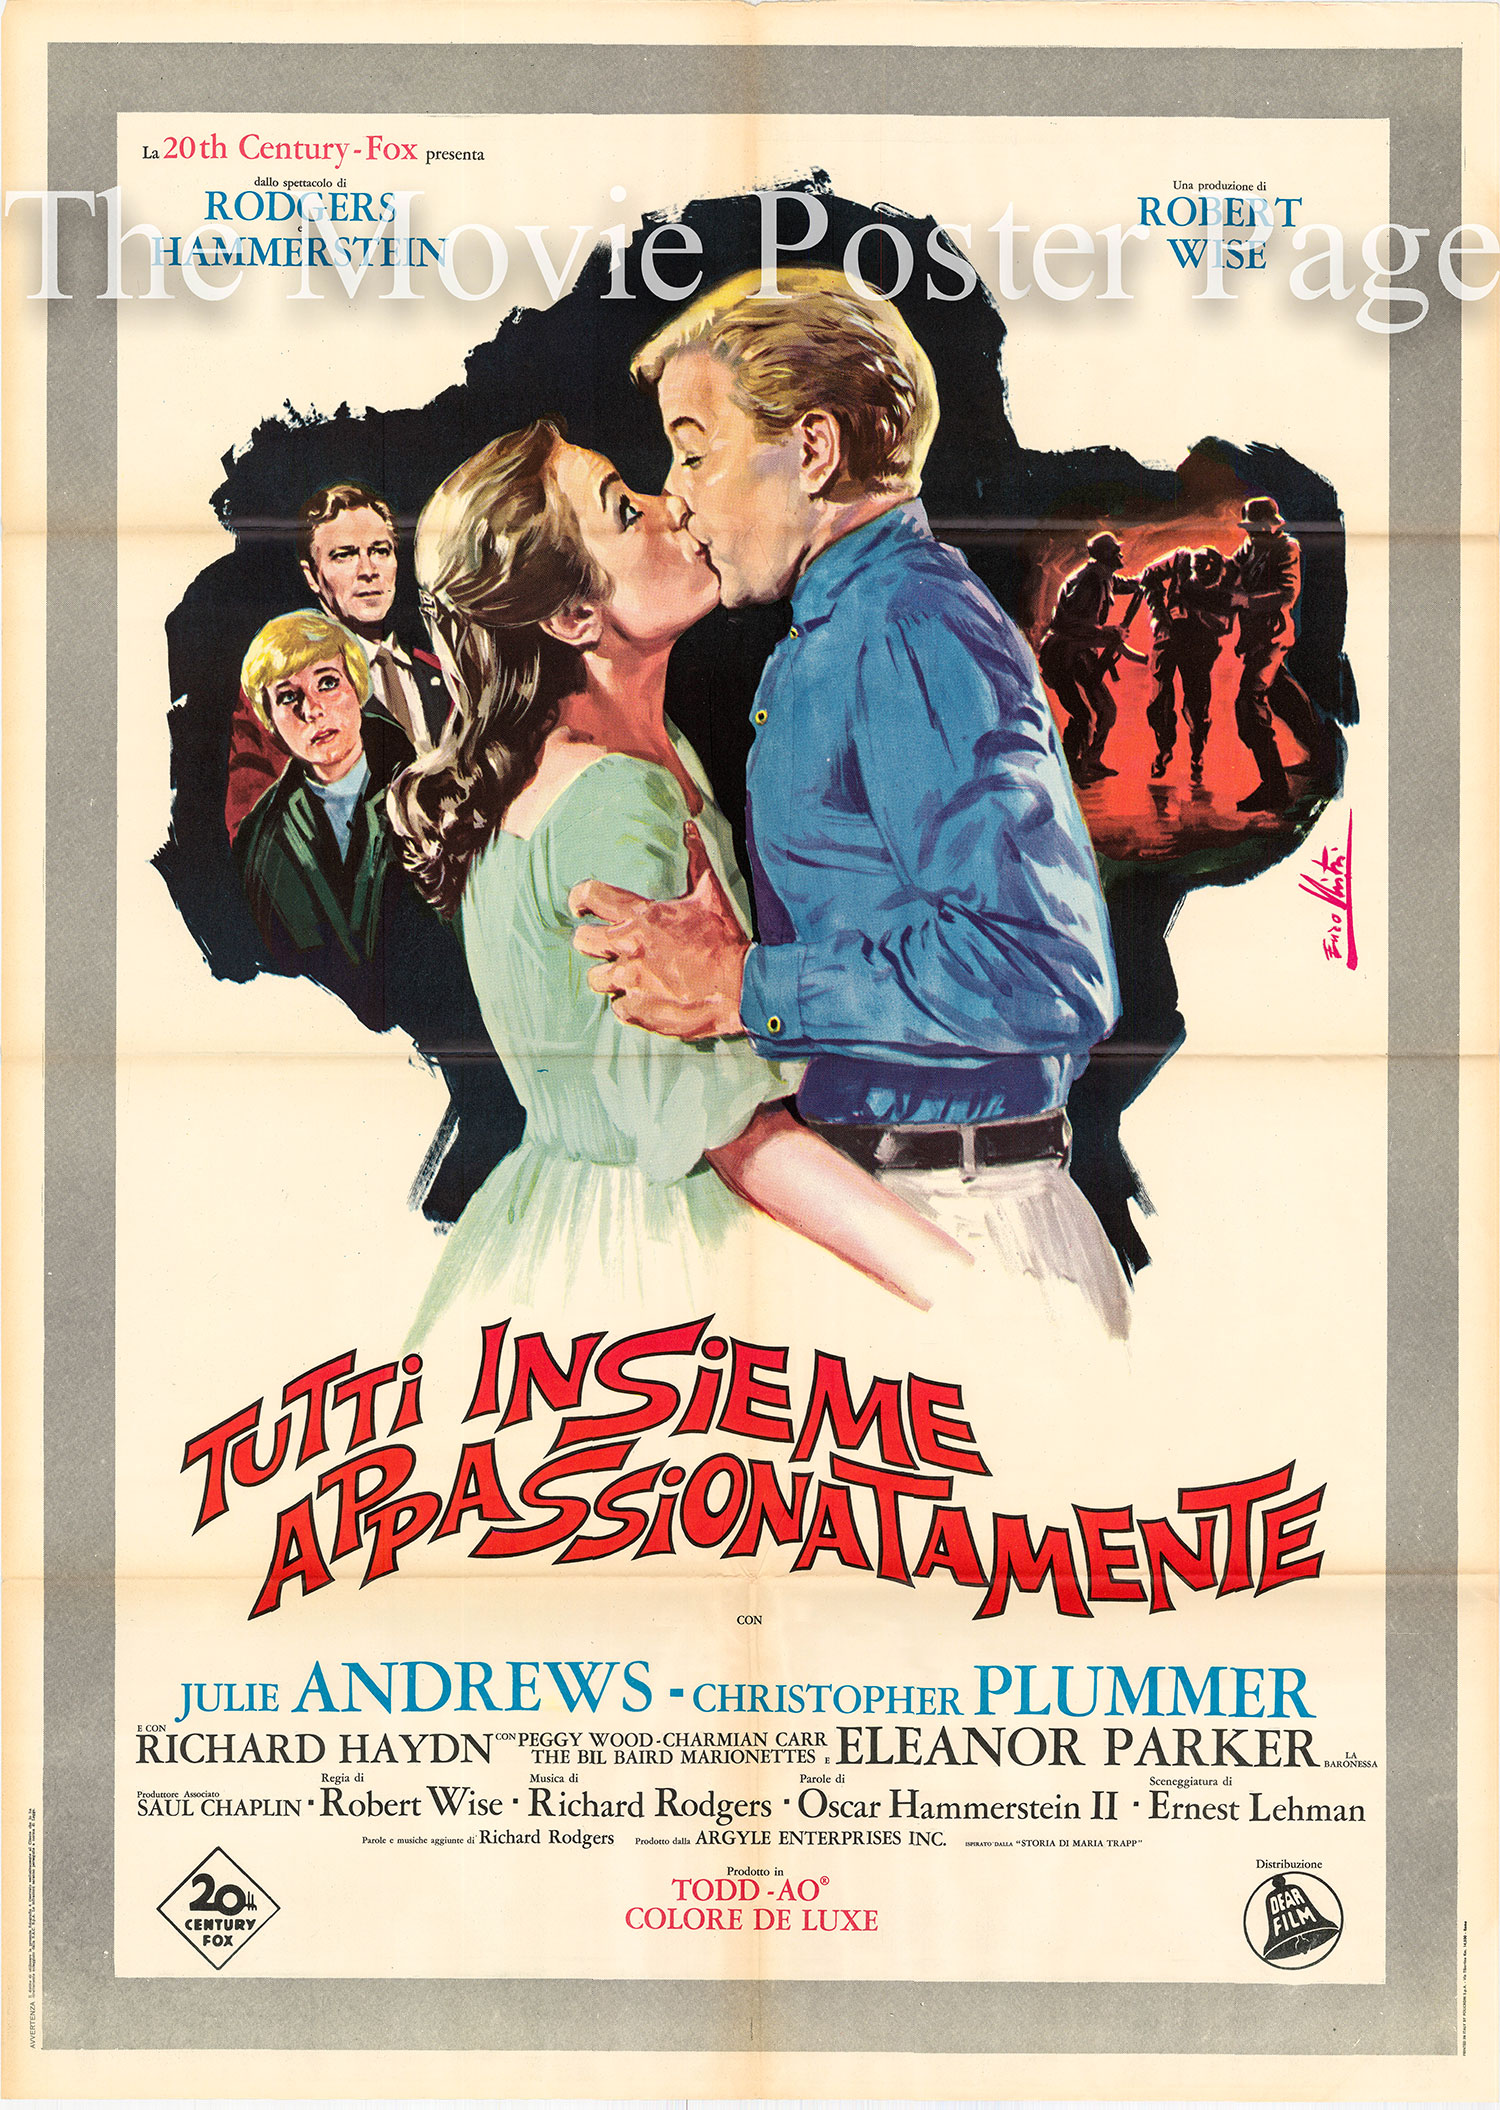 Pictured is an Italian two-sheet promotional poster for the 1966 Robert Wise film <i>The Sound of Music</i> starring Julie Andrews.